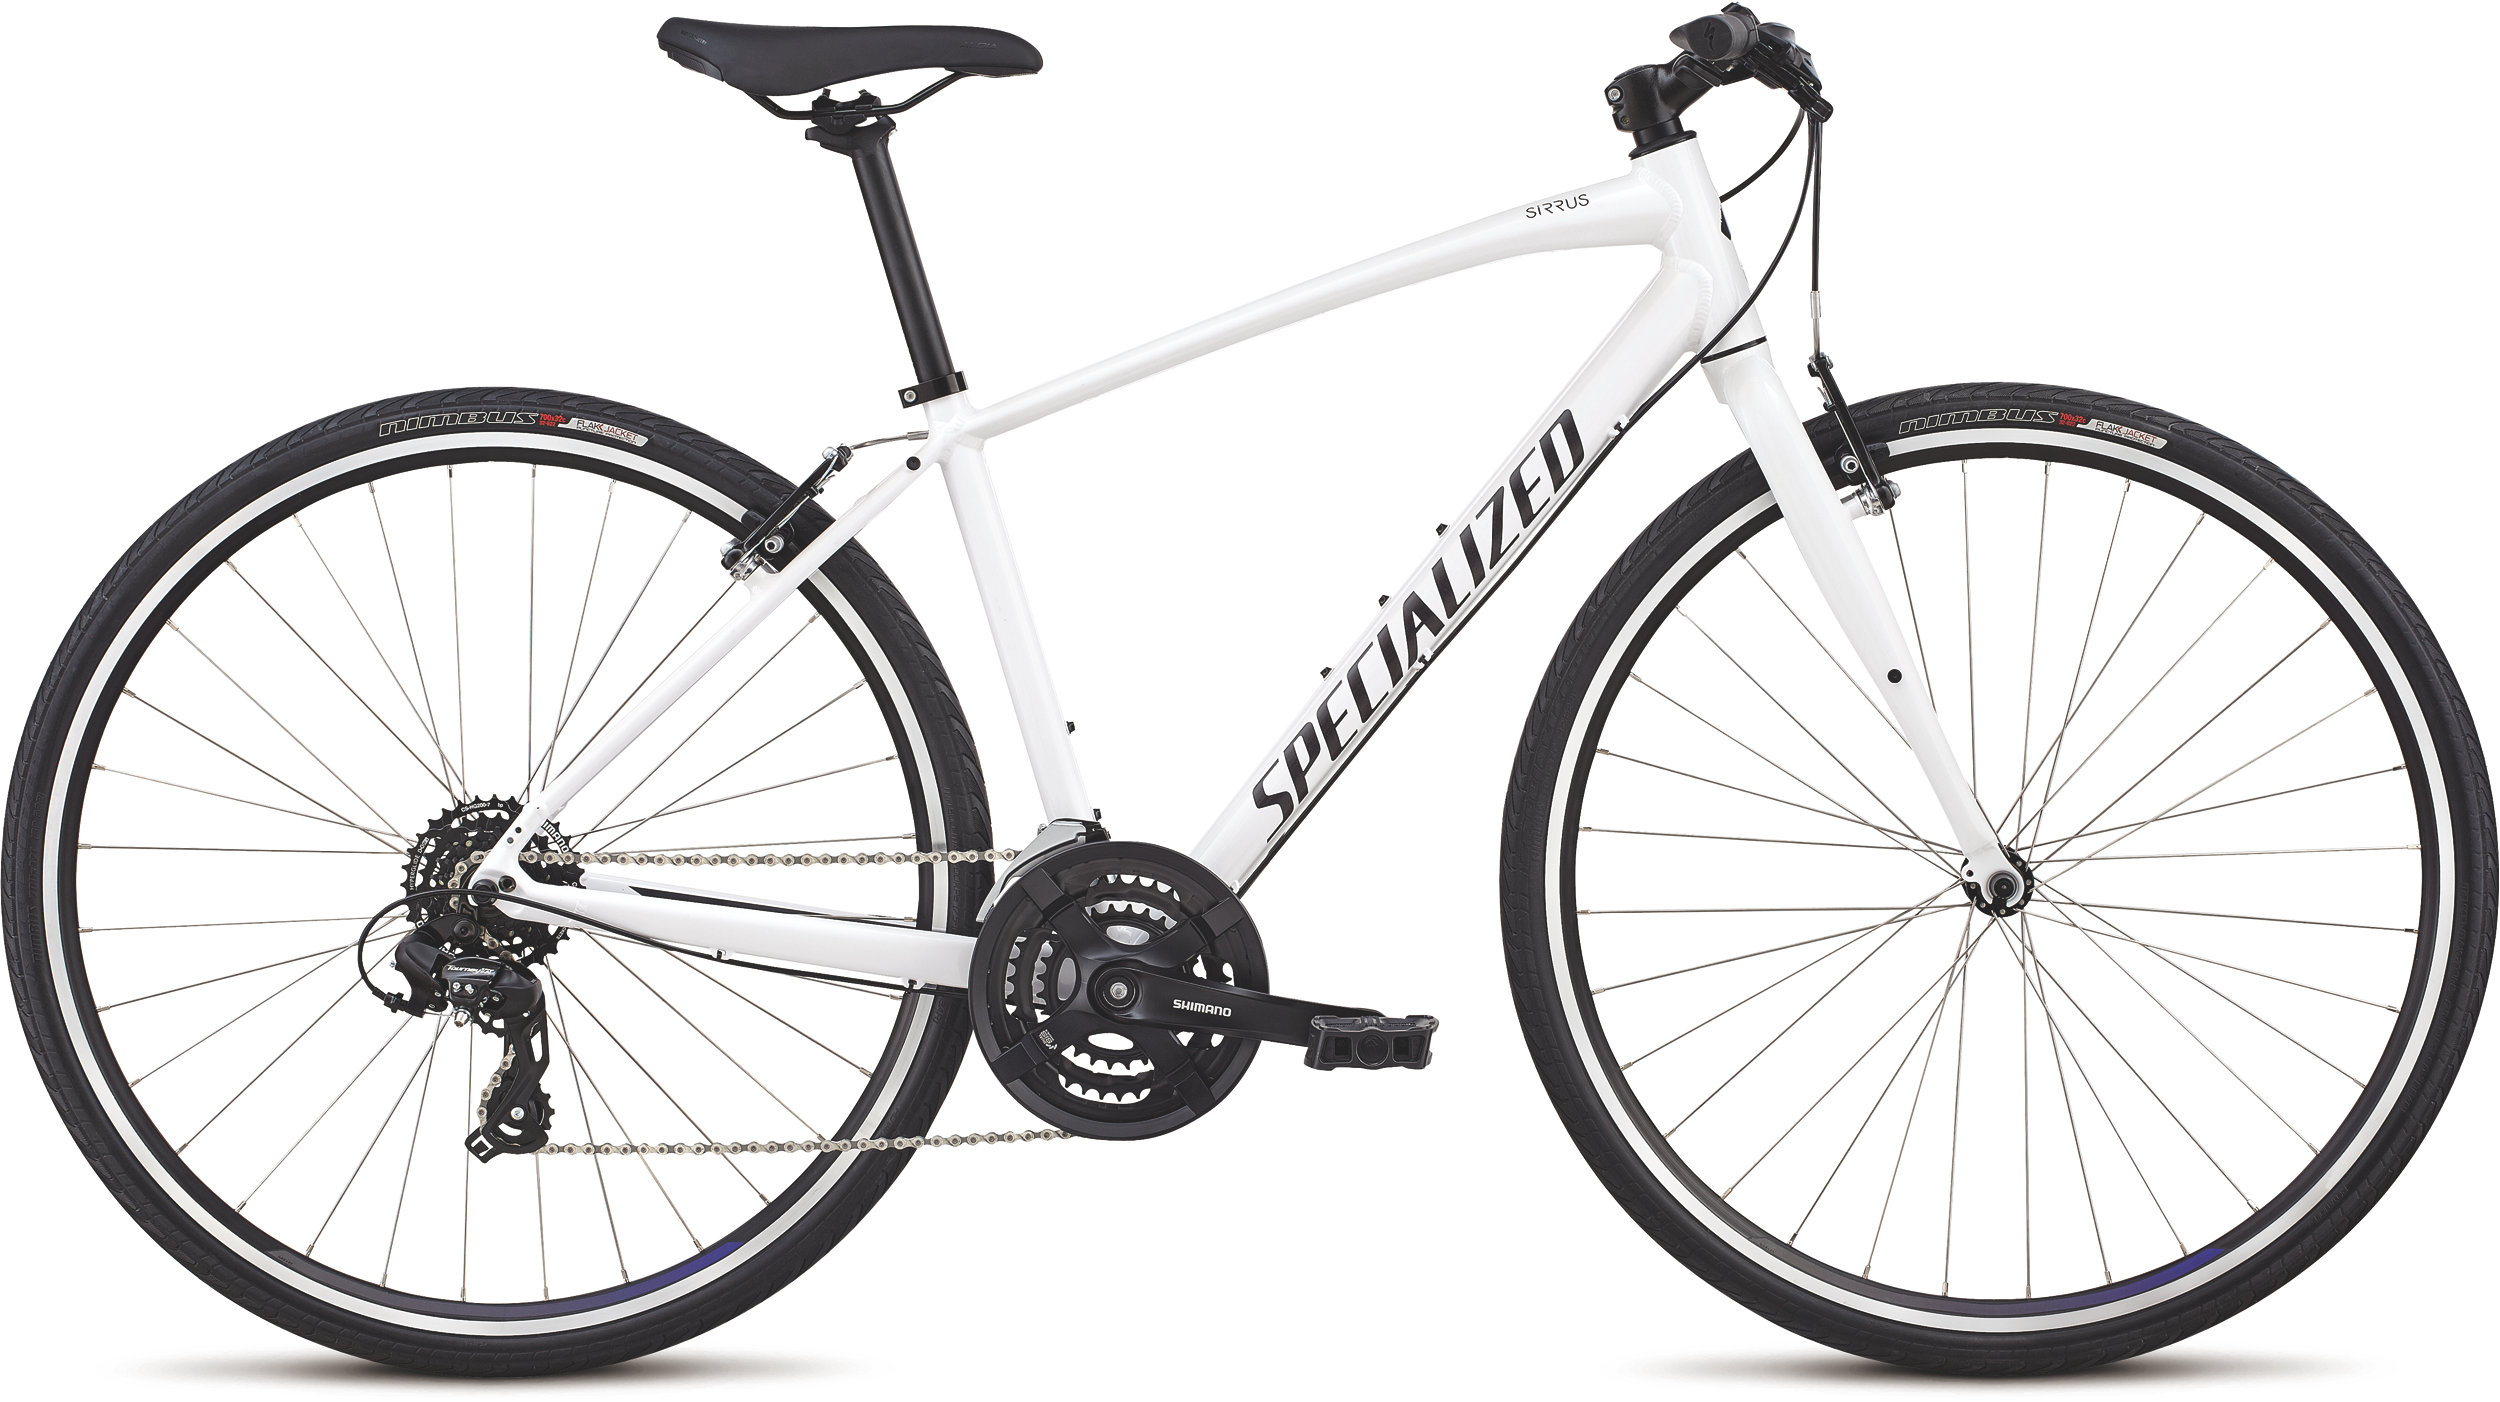 Specialized Women´s Sirrus - V-Brake Metallic White/Tarmac Black/Floral M - Alpha Bikes